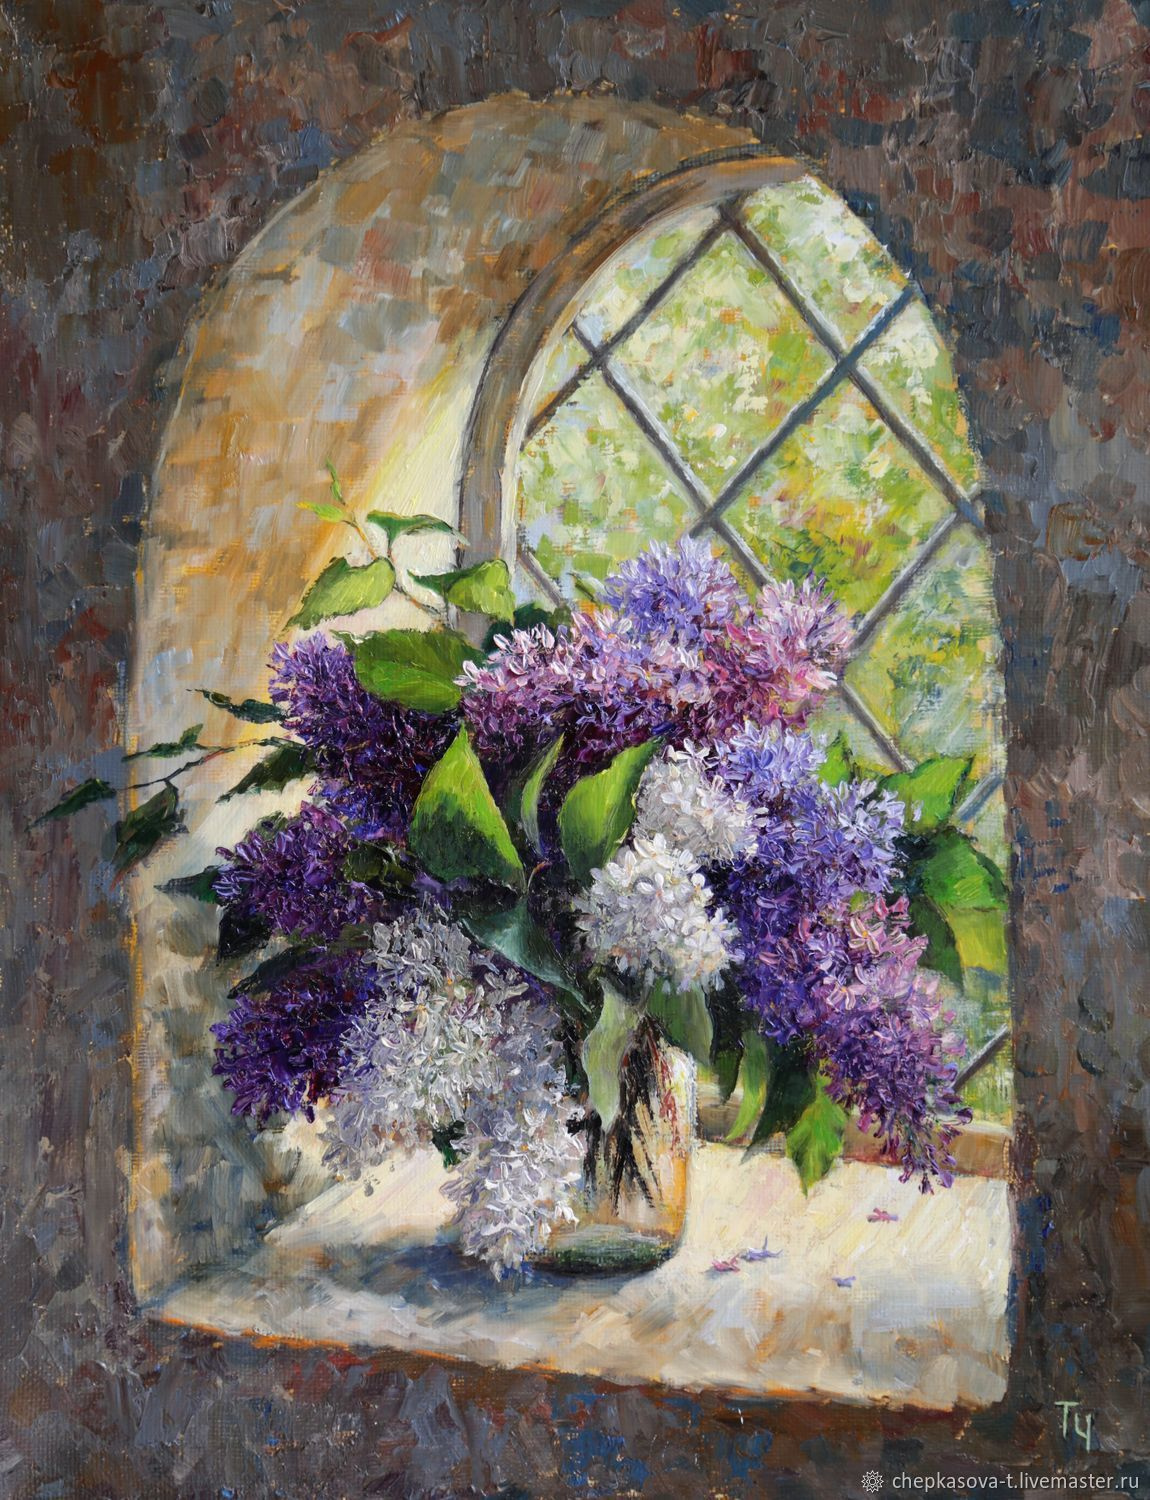 The Window With The Lilacs Oil Painting Buy Or Order In An Online Shop On Livemaster Fp531com Mos Lilac Painting Oil Painting Flowers Oil Painting Nature